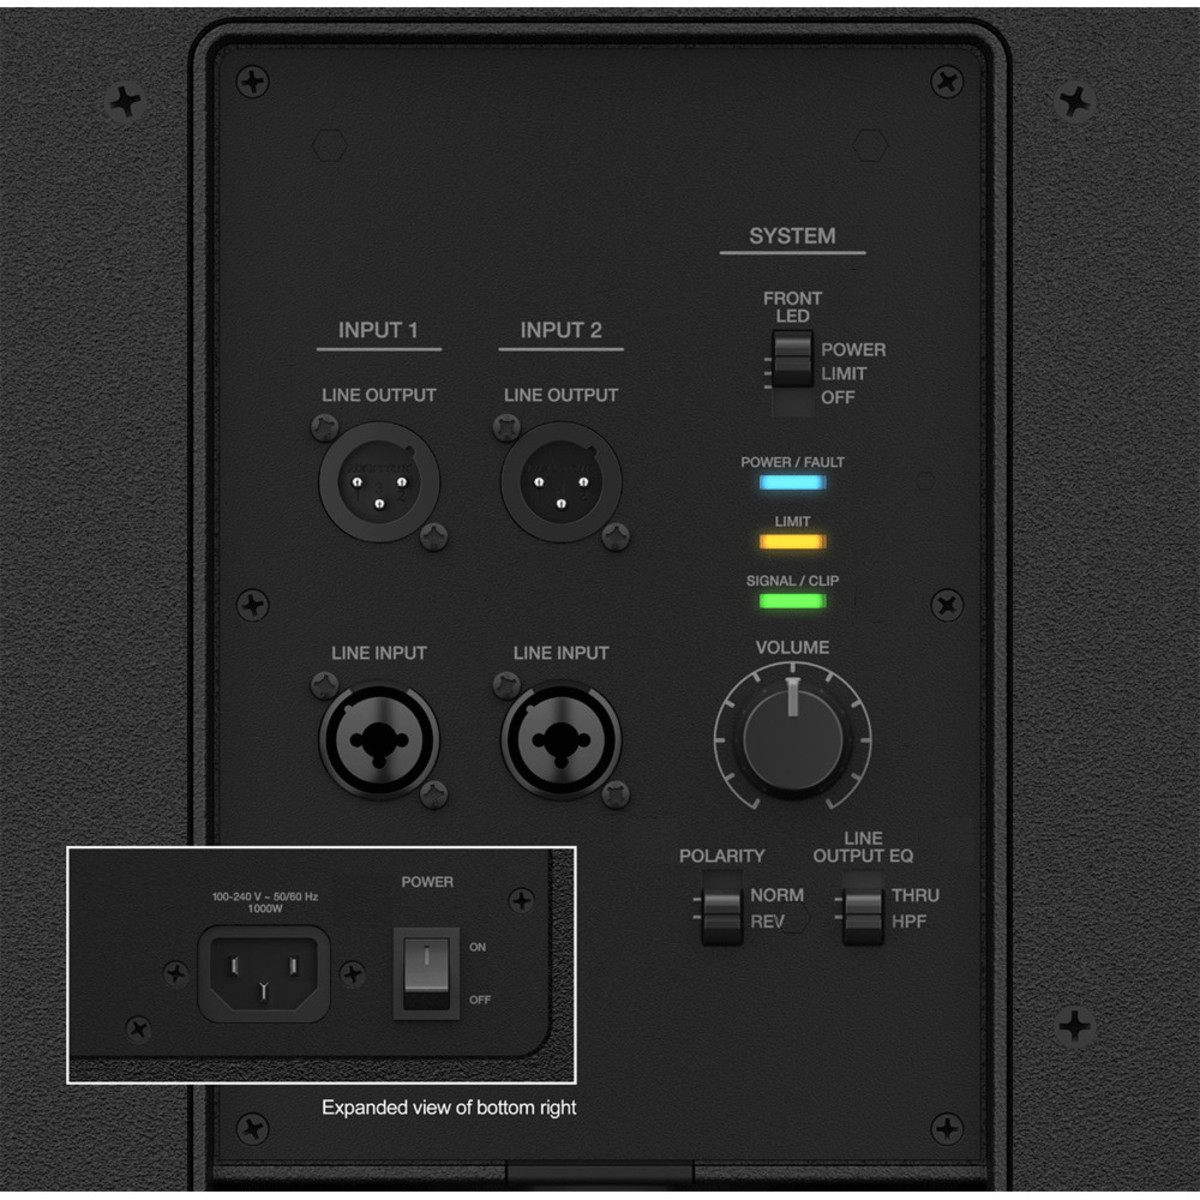 Bose F1 Flexible Array Stereo Loudspeaker System With Subwoofers Equalizers Crossovers Wiring Kits Caps And More Click On Picture To Loading Zoom